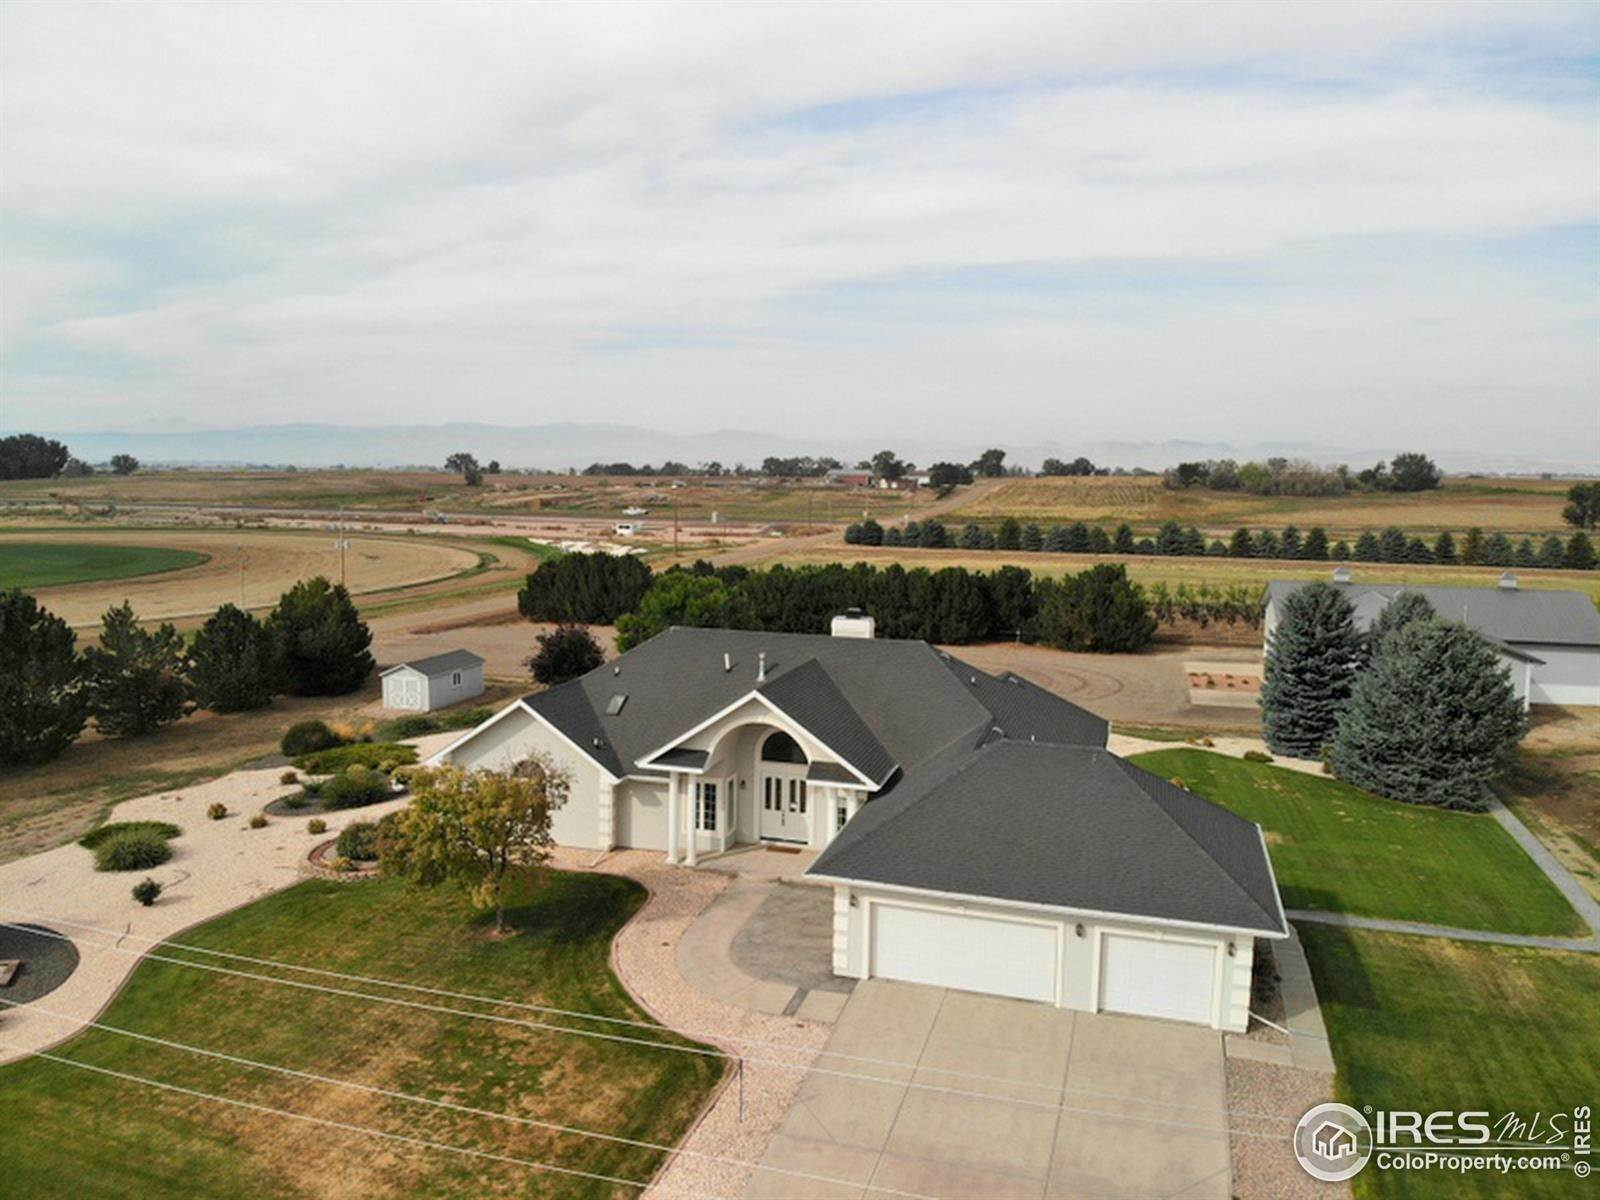 Single Family Homes for Sale at 10759 N County Road 7 Wellington, Colorado 80549 United States